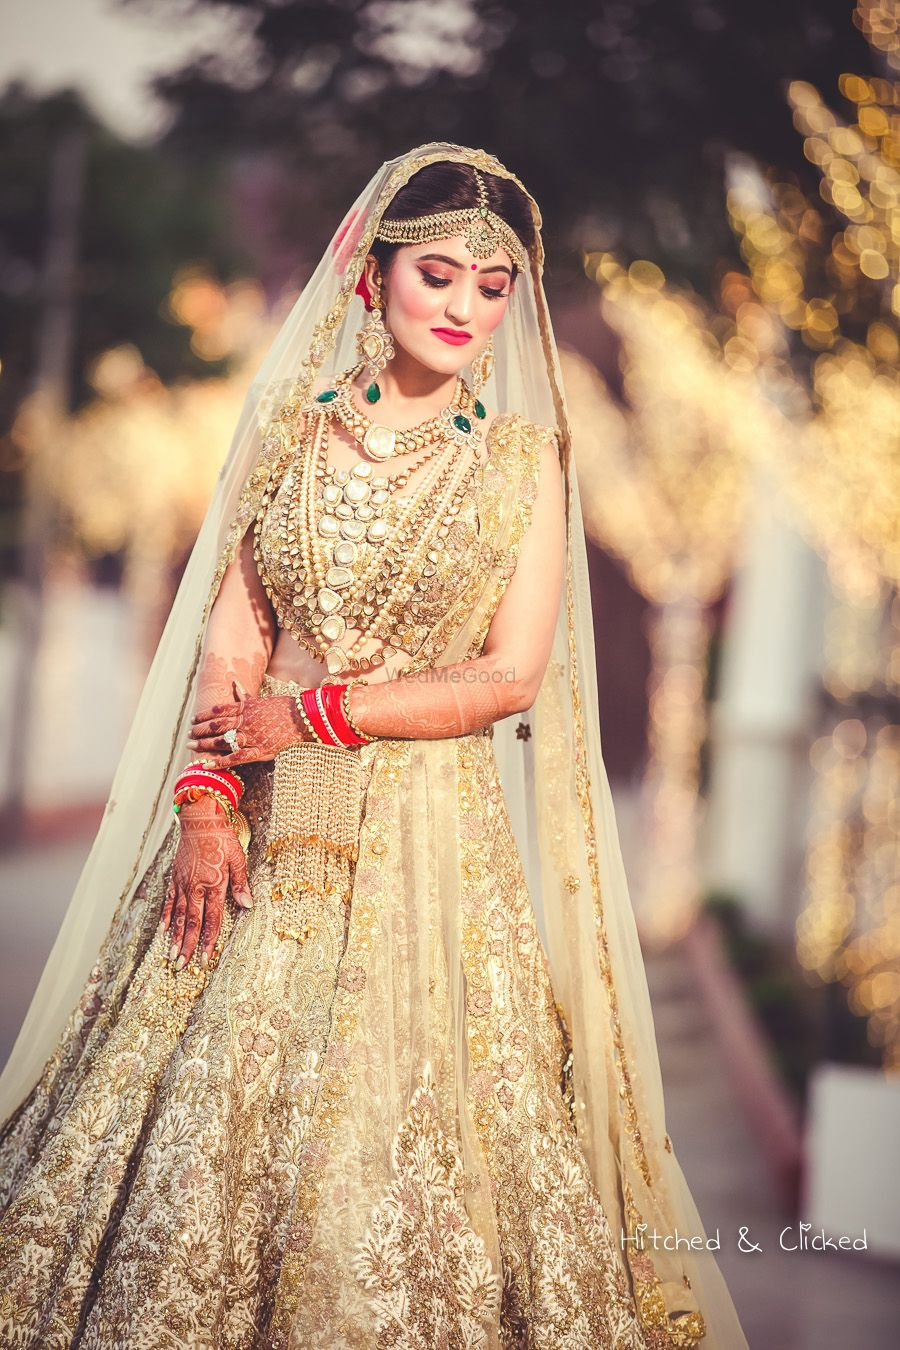 Photo of Stunning bride in Gold